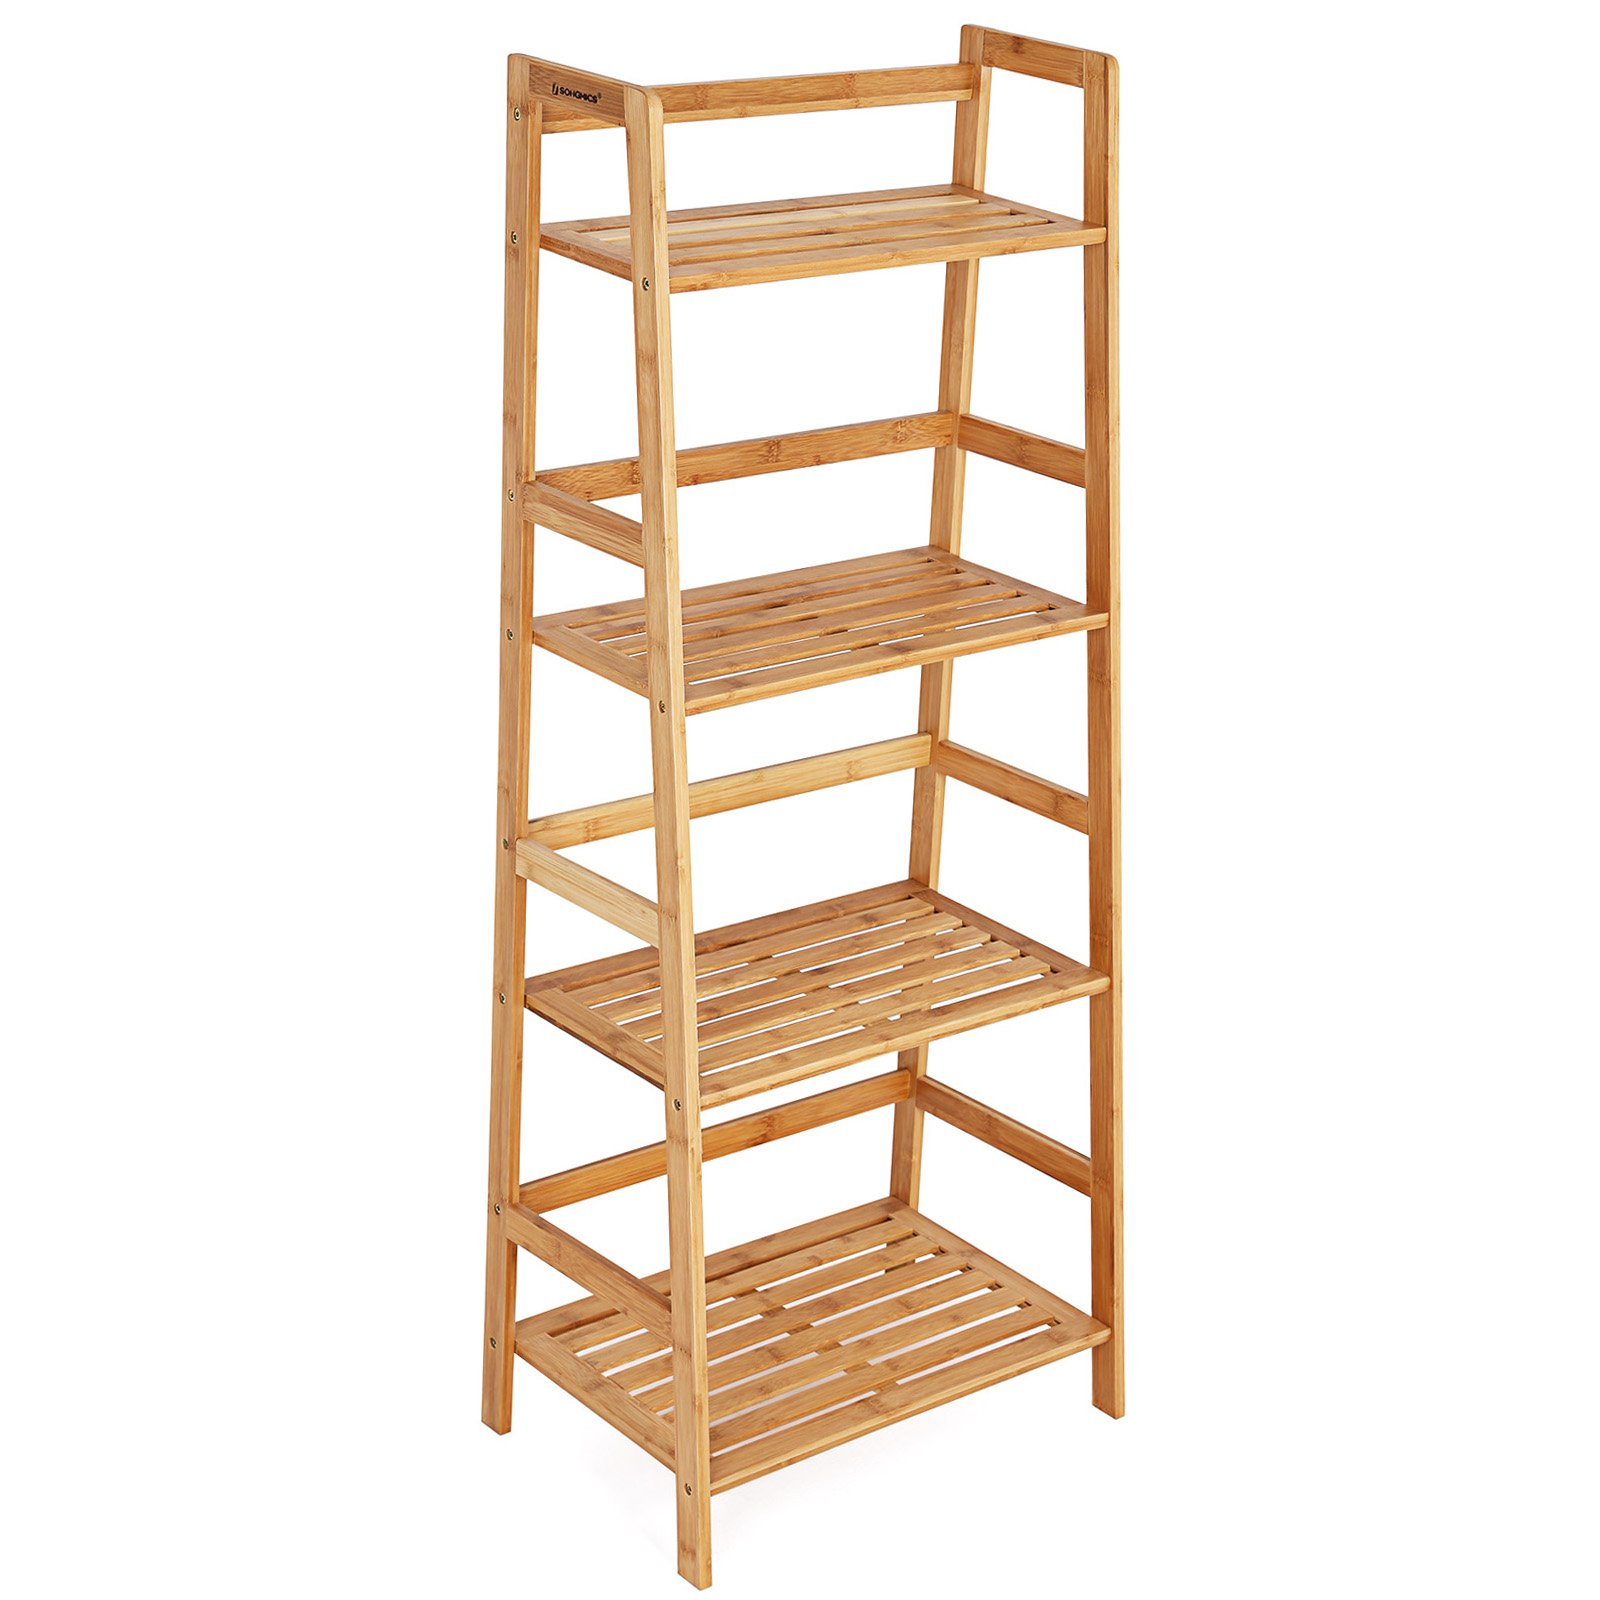 SONGMICS Bamboo Ladder Shelf Bookcase 4 Shelf Multifunctional Storage Rack Display Stand ULBR04Y